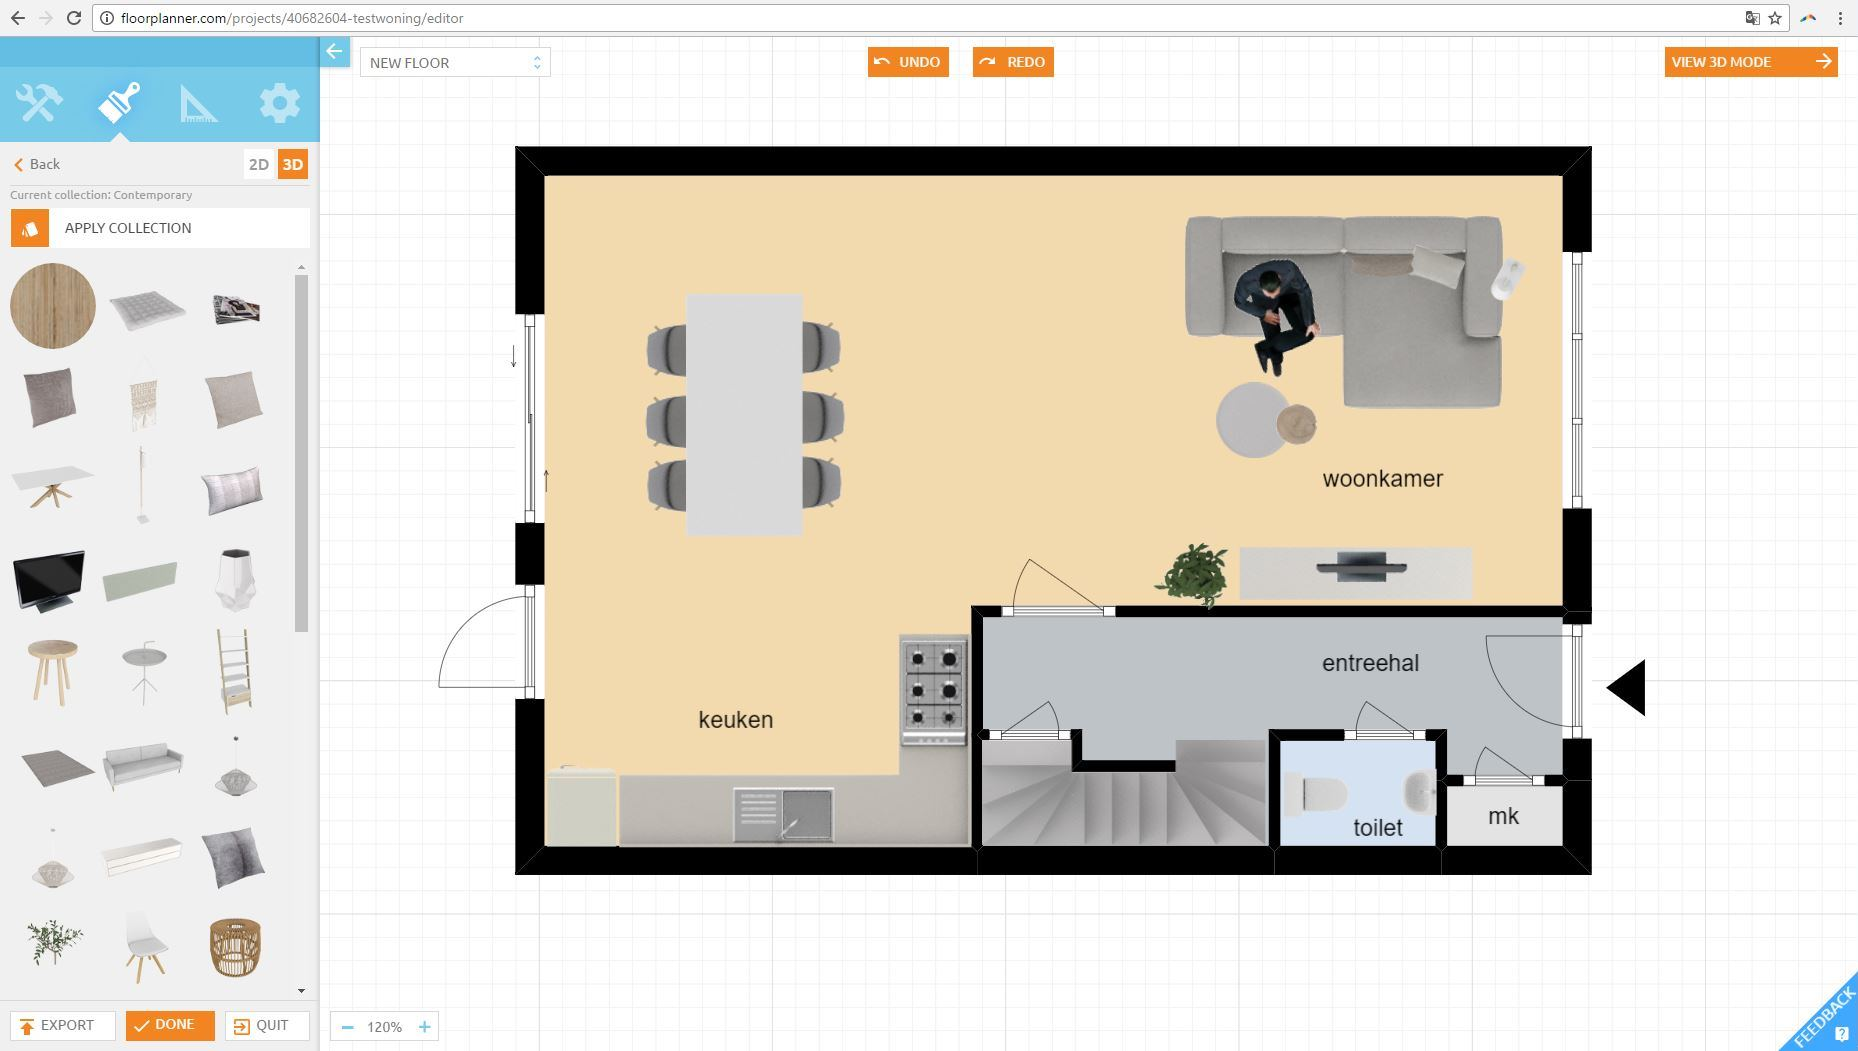 Nieuwe floorplanner editor for Www floorplanner